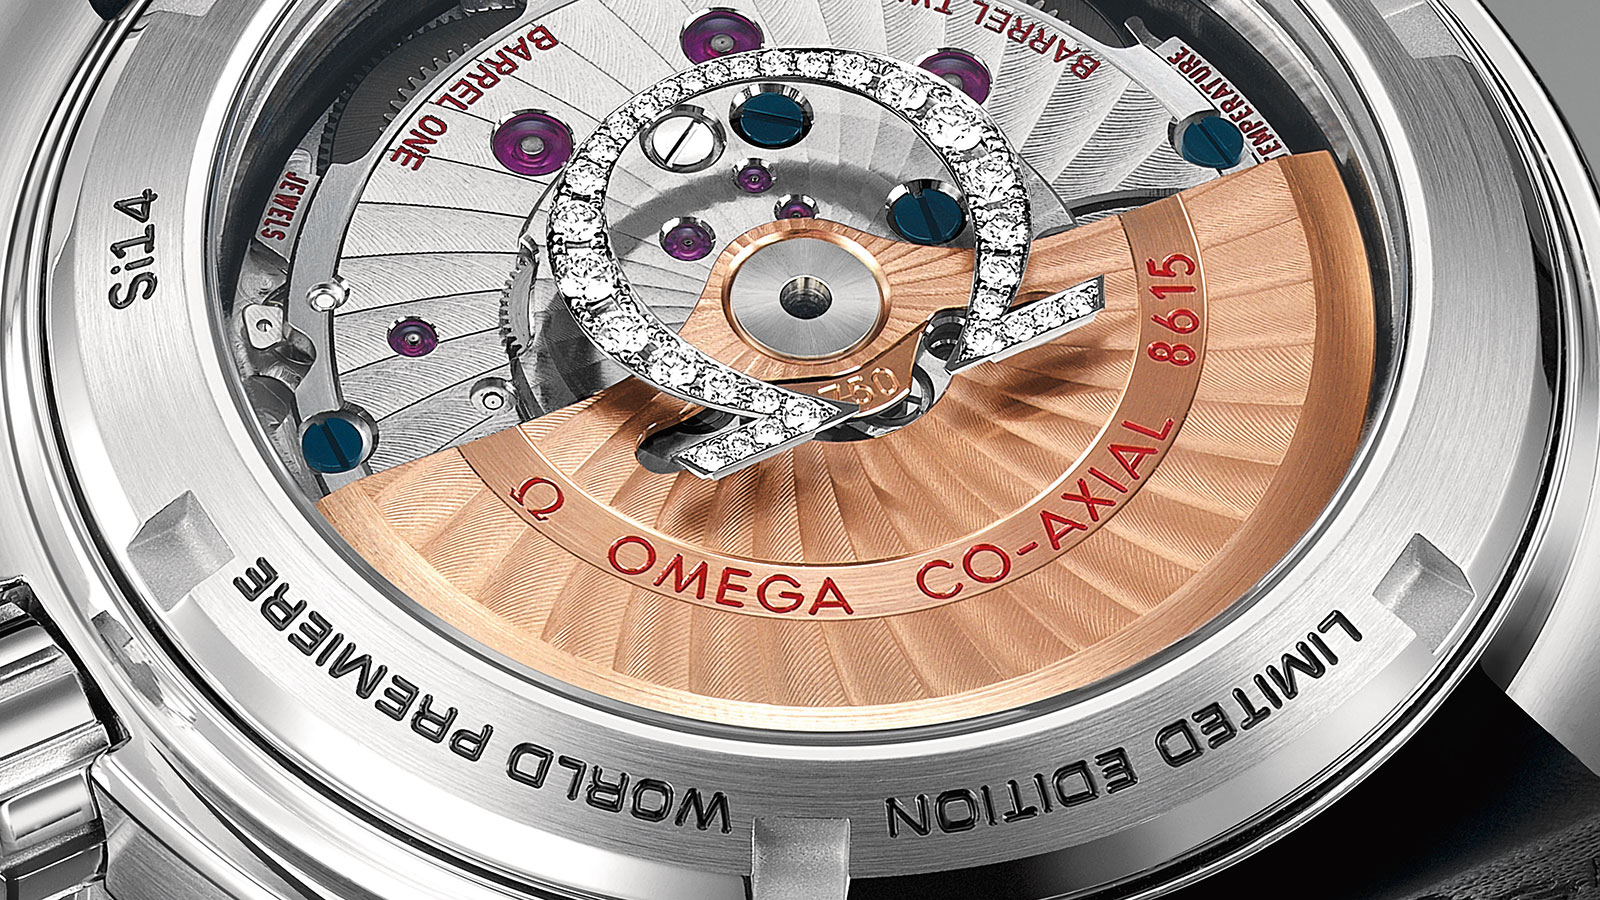 Seamaster Planet Ocean 600M Planet Ocean 600M Omega Co‑axial GMT 43.5 mm Watch - 232.98.44.22.01.001